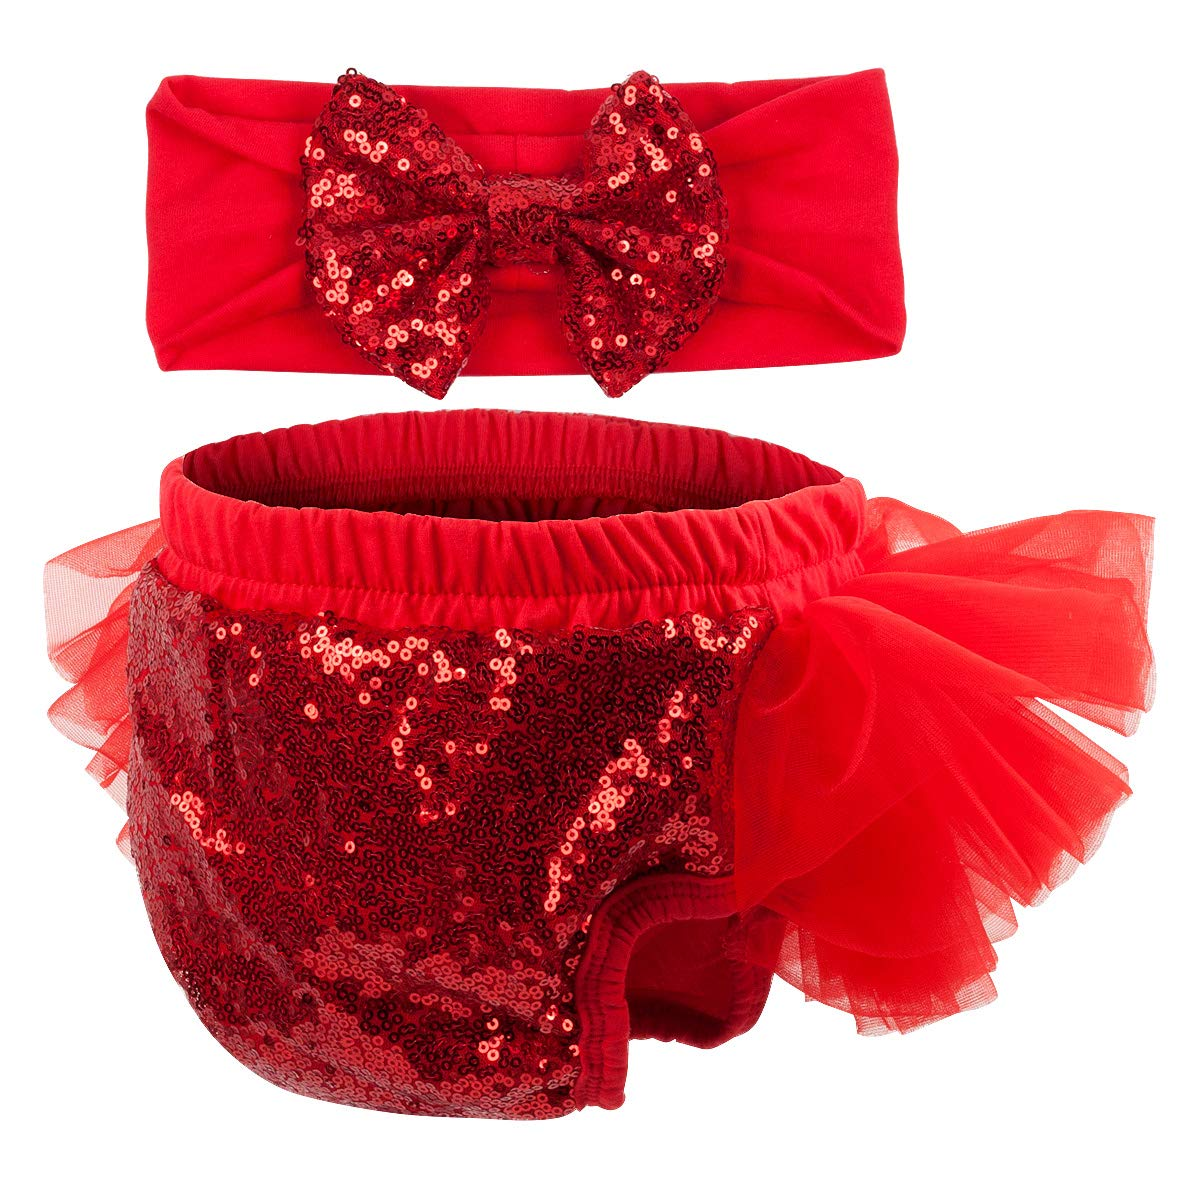 Slowera Baby Girls 2PCS Sets Cotton Tulle Sequins Diaper Cover Bloomers and Headband (Red, M: 6-12 Months)